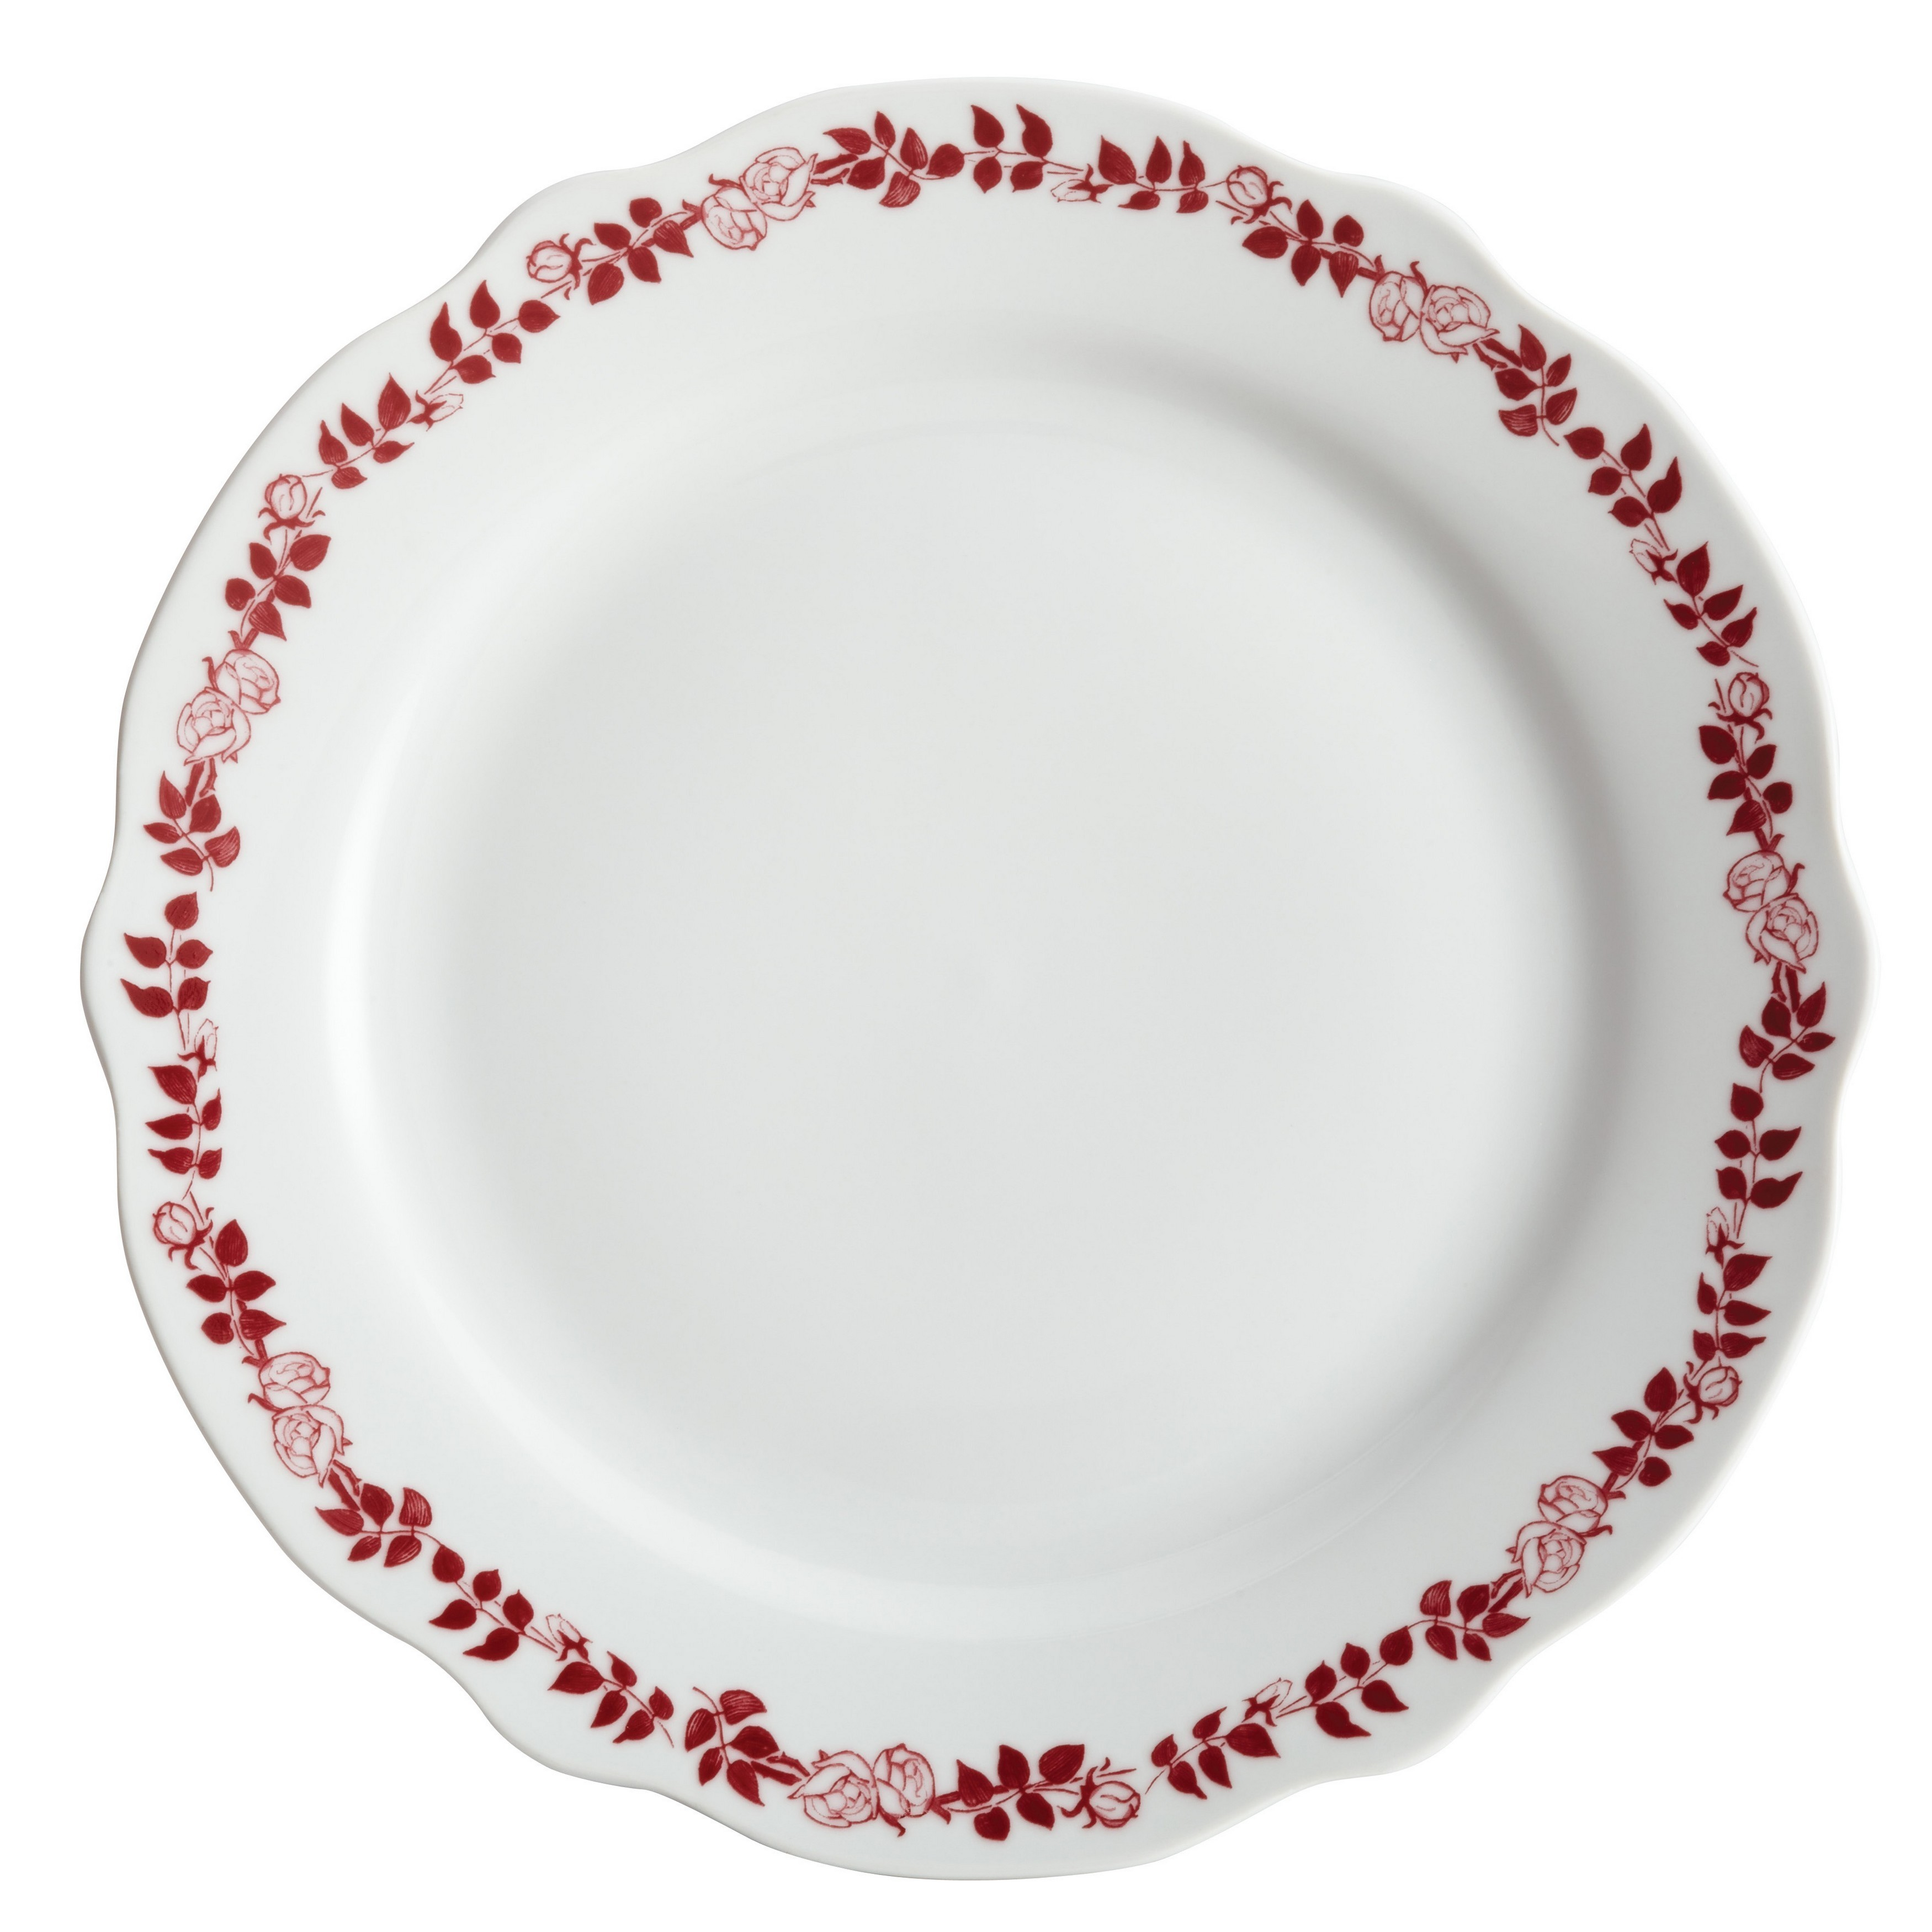 BonJour Dinnerware Yuletide Garland Print 4-piece Porcelain Stoneware Fluted Dinner Plate Set - Free Shipping Today - Overstock - 16377579  sc 1 st  Overstock & BonJour Dinnerware Yuletide Garland Print 4-piece Porcelain ...